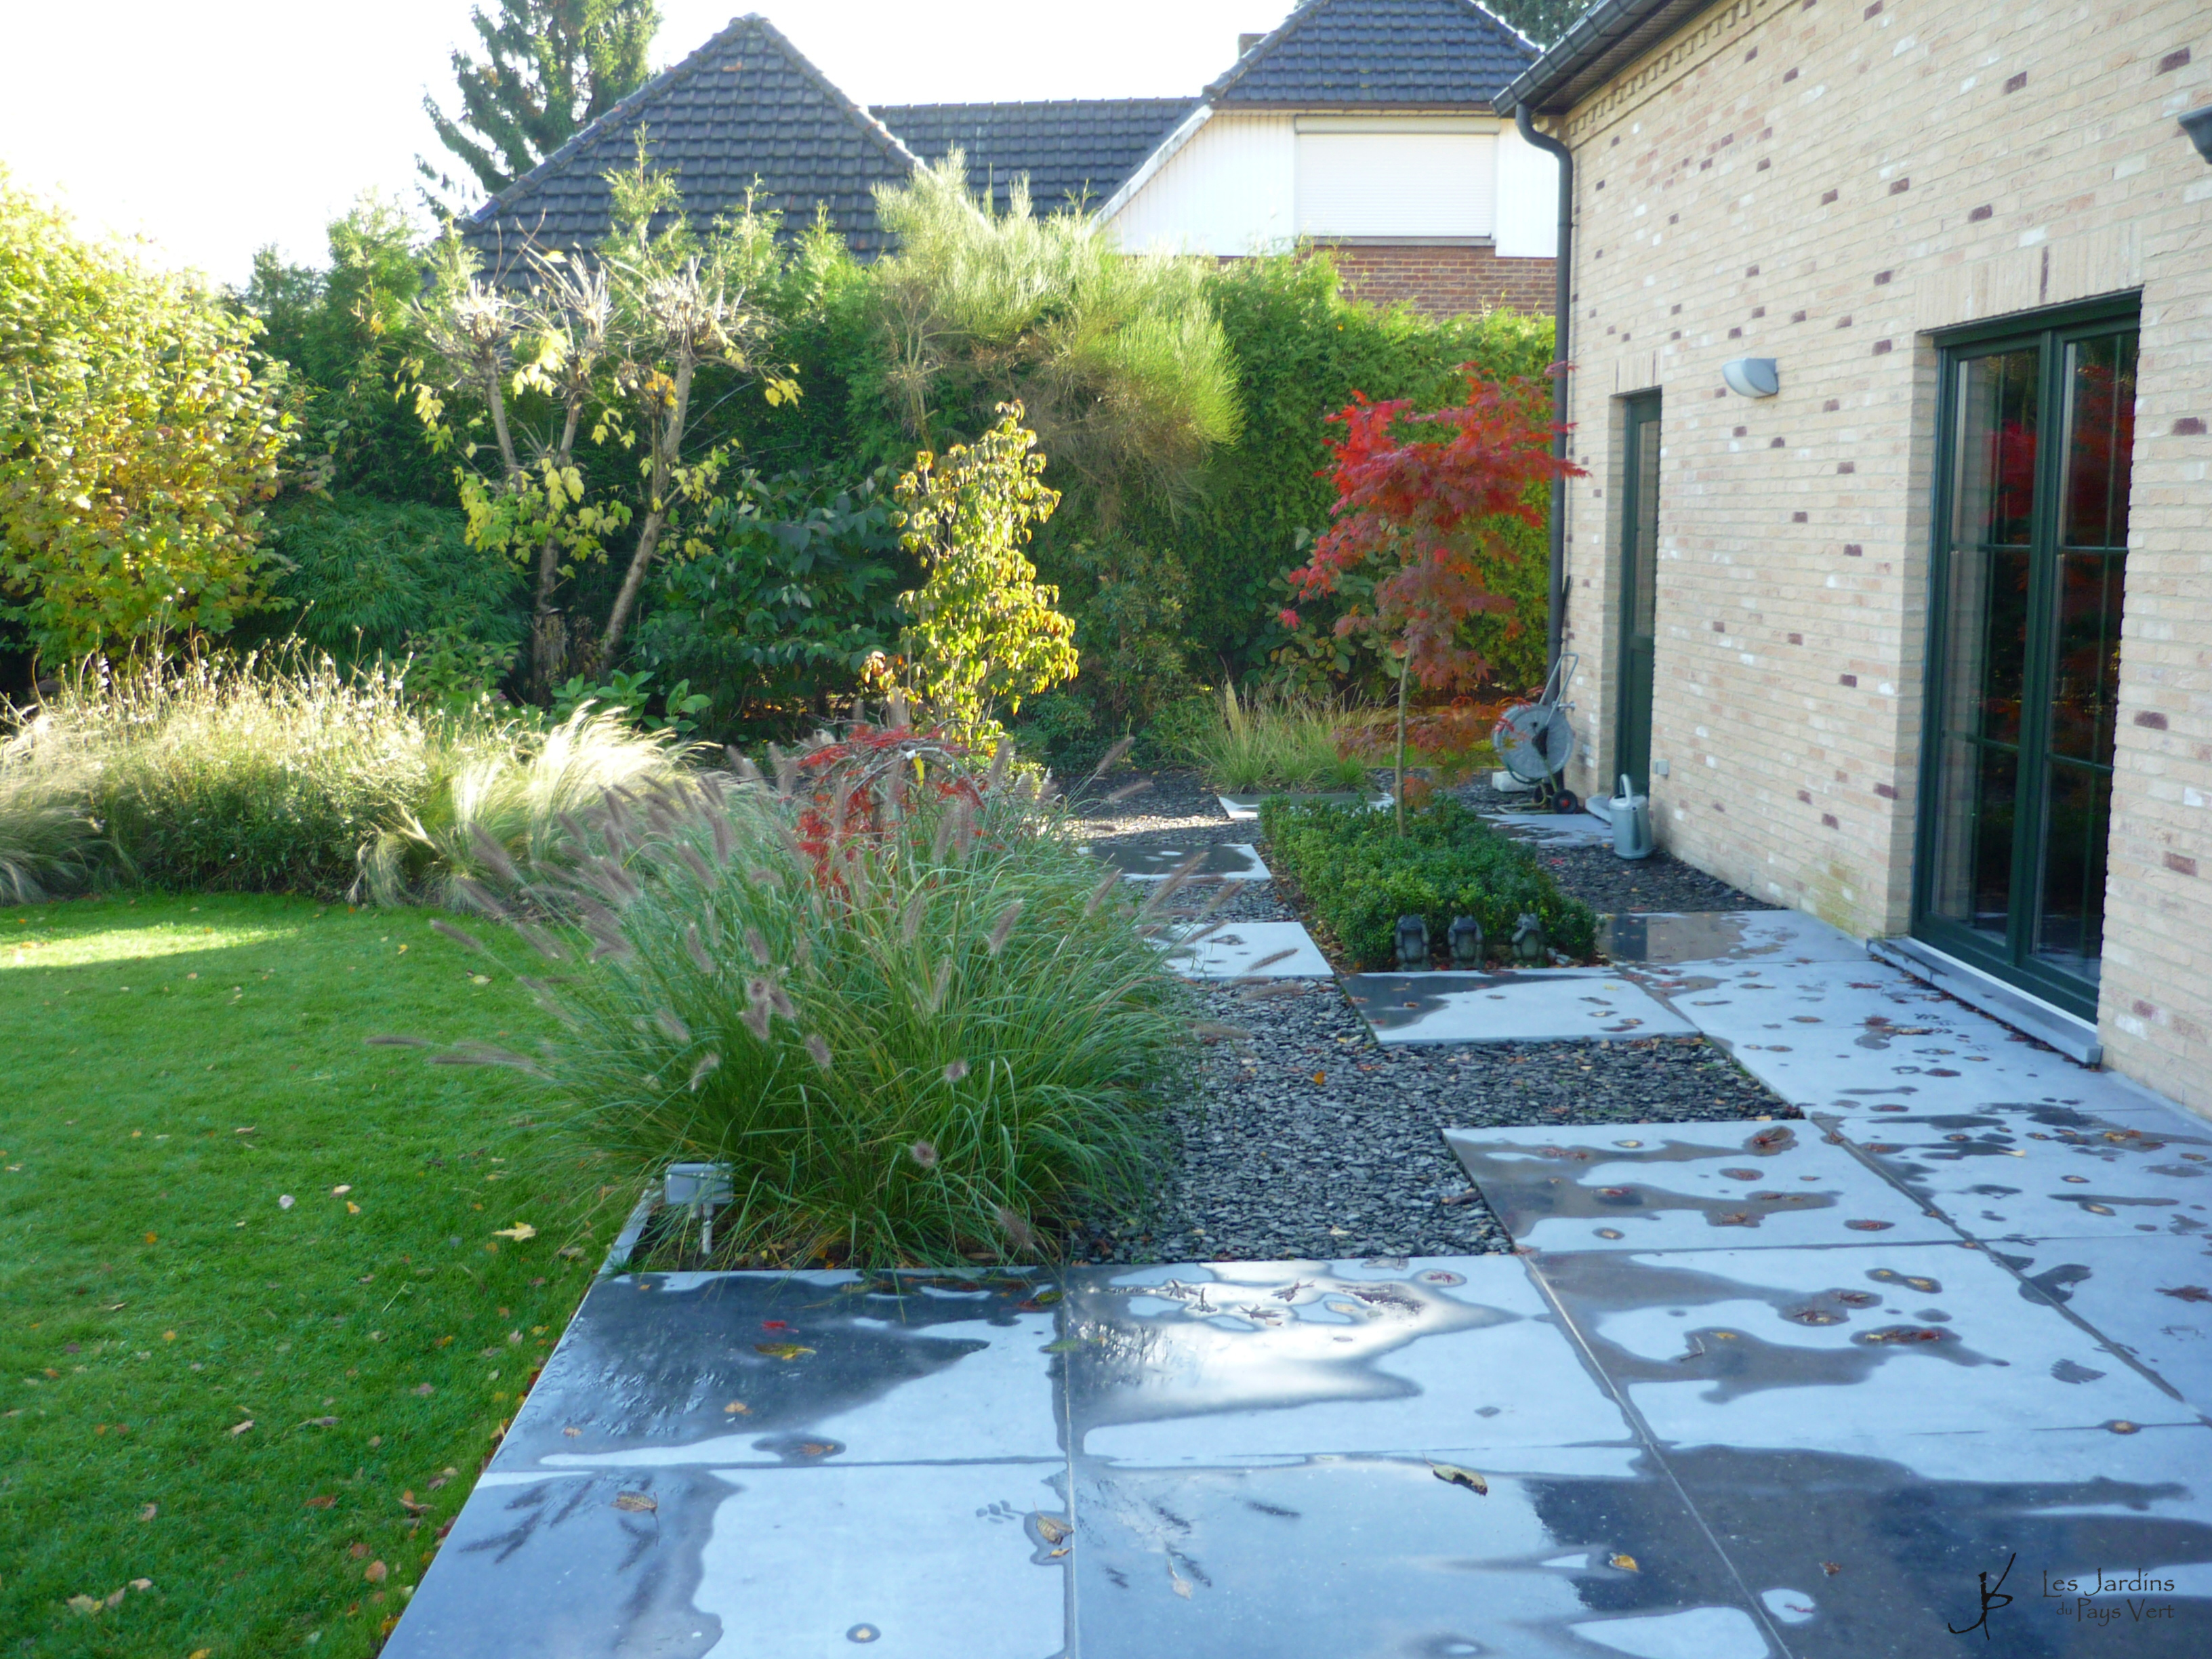 Awesome terrasse jardin en pierre photos awesome for Carrelage pierre bleue prix